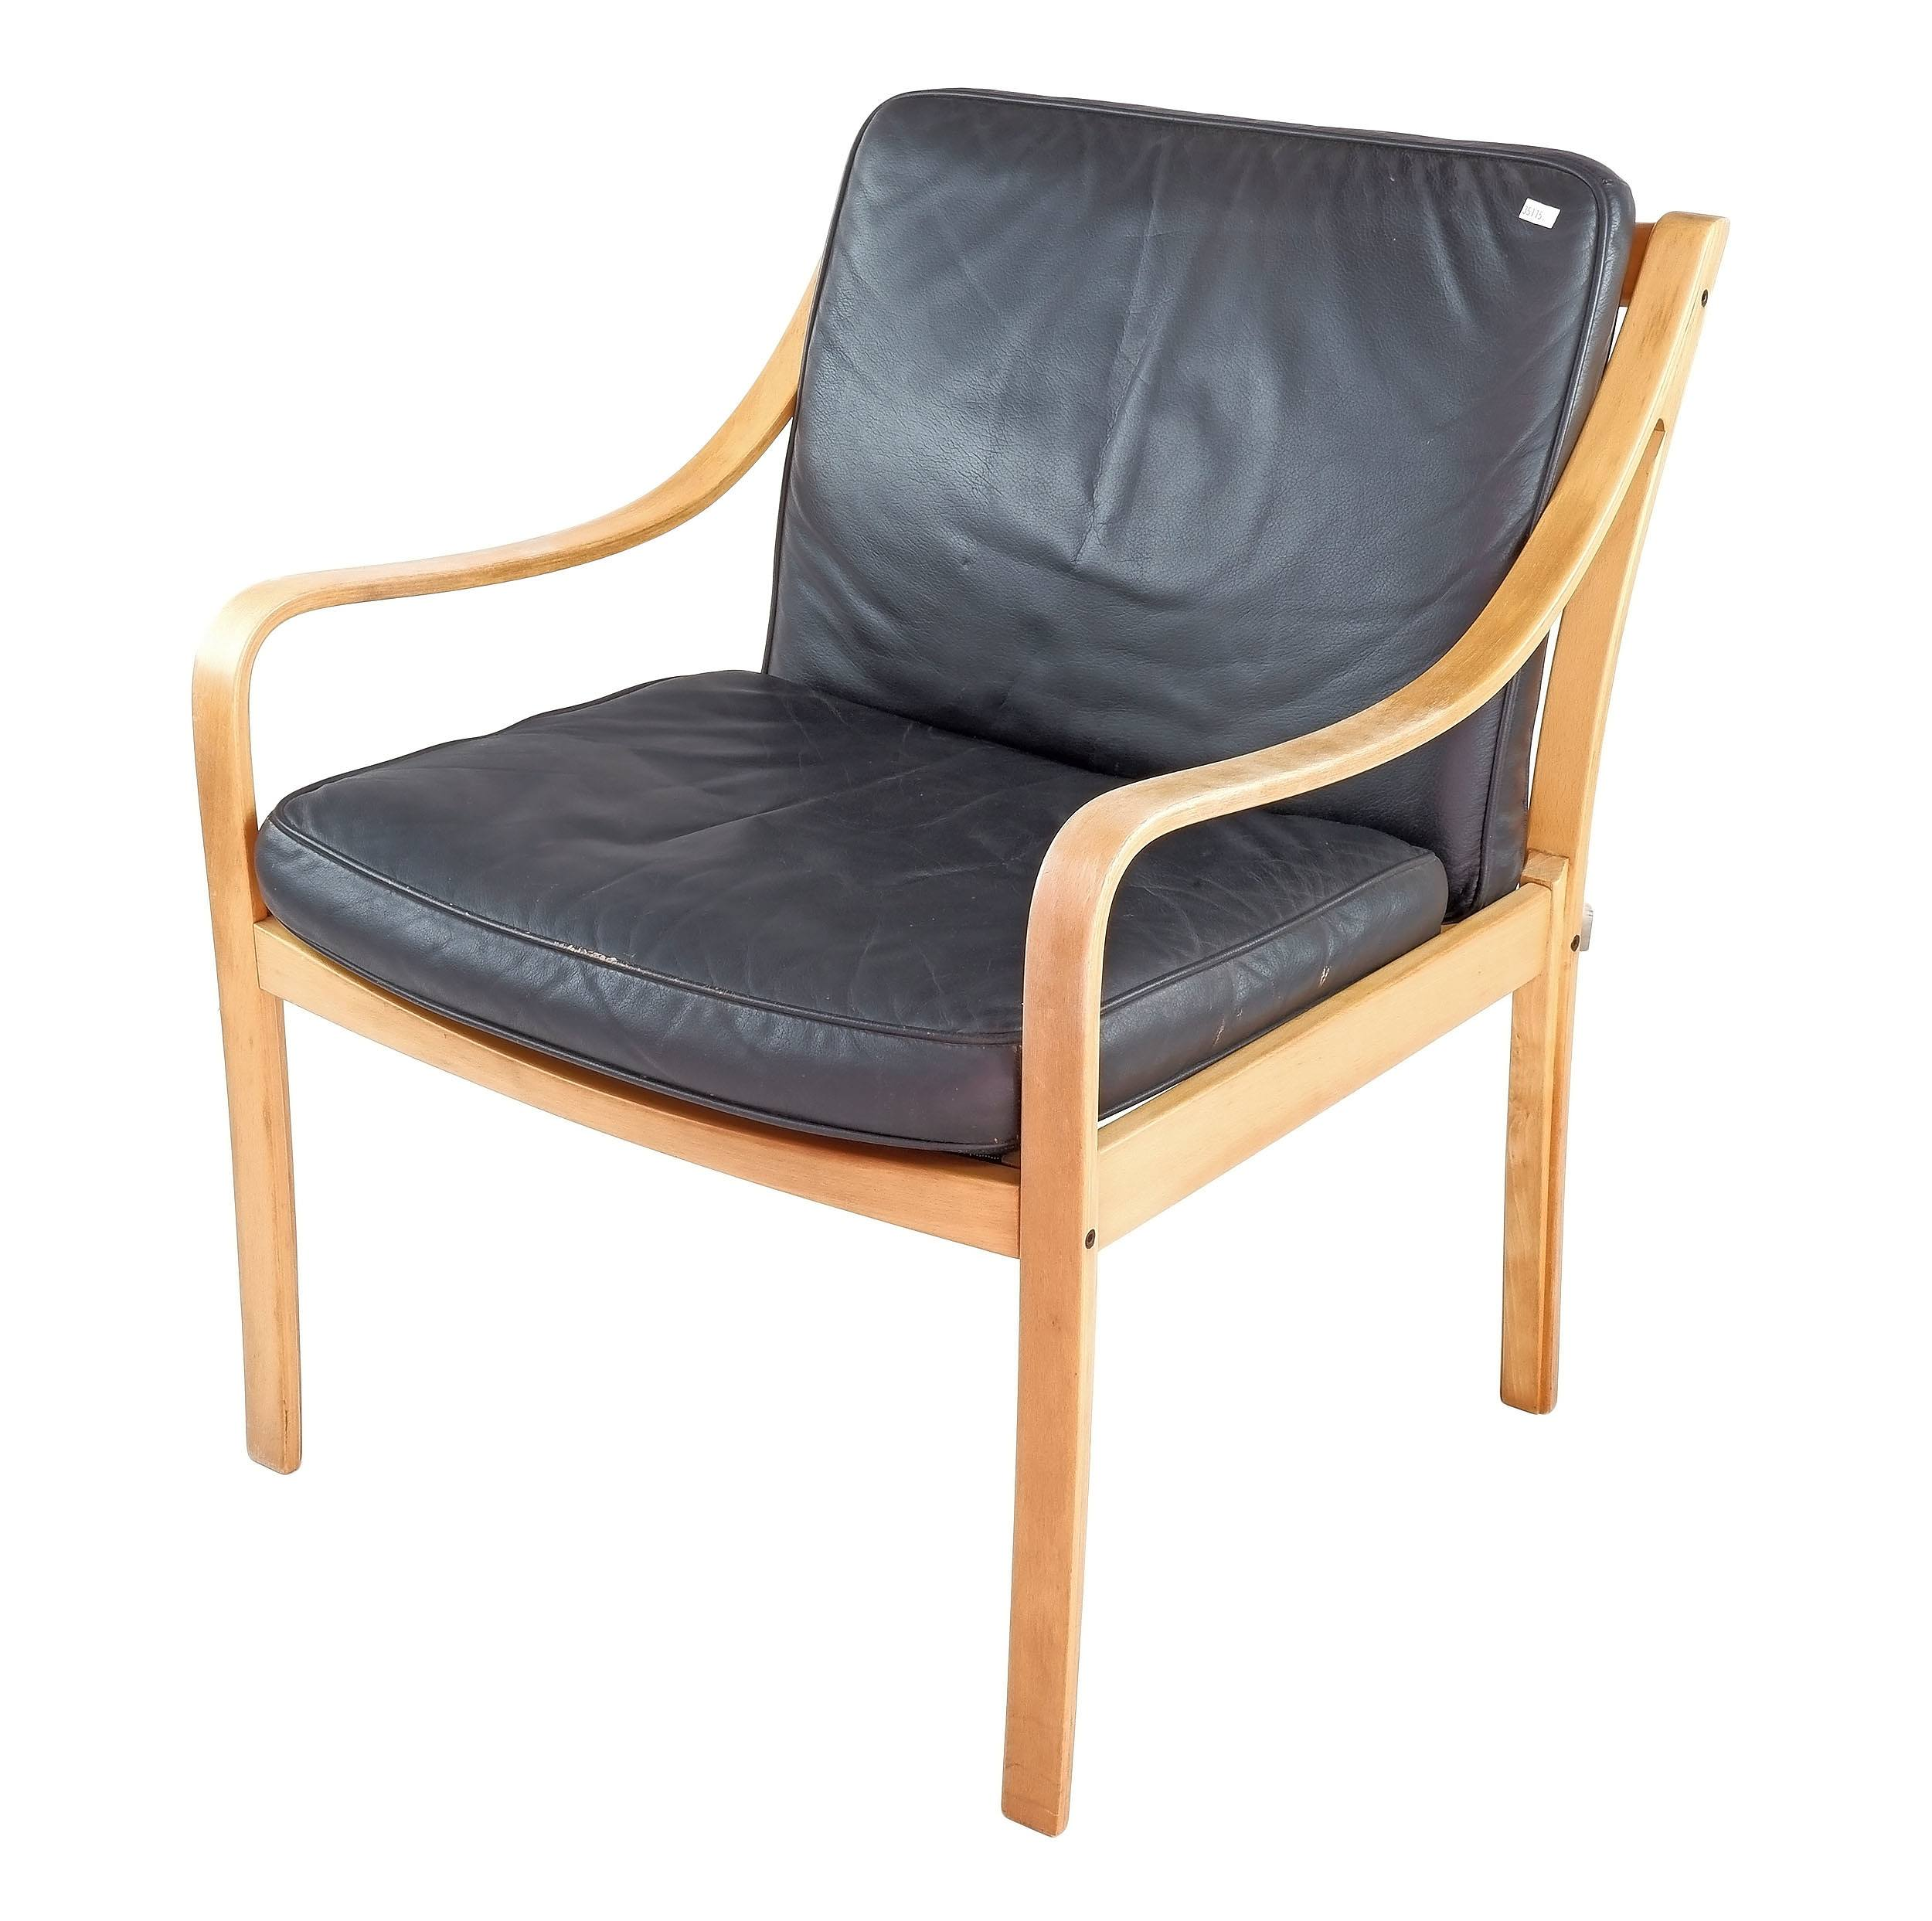 'Fredrik Kayser Model 109 Armchair for Vatne Lenestolfabrikk'